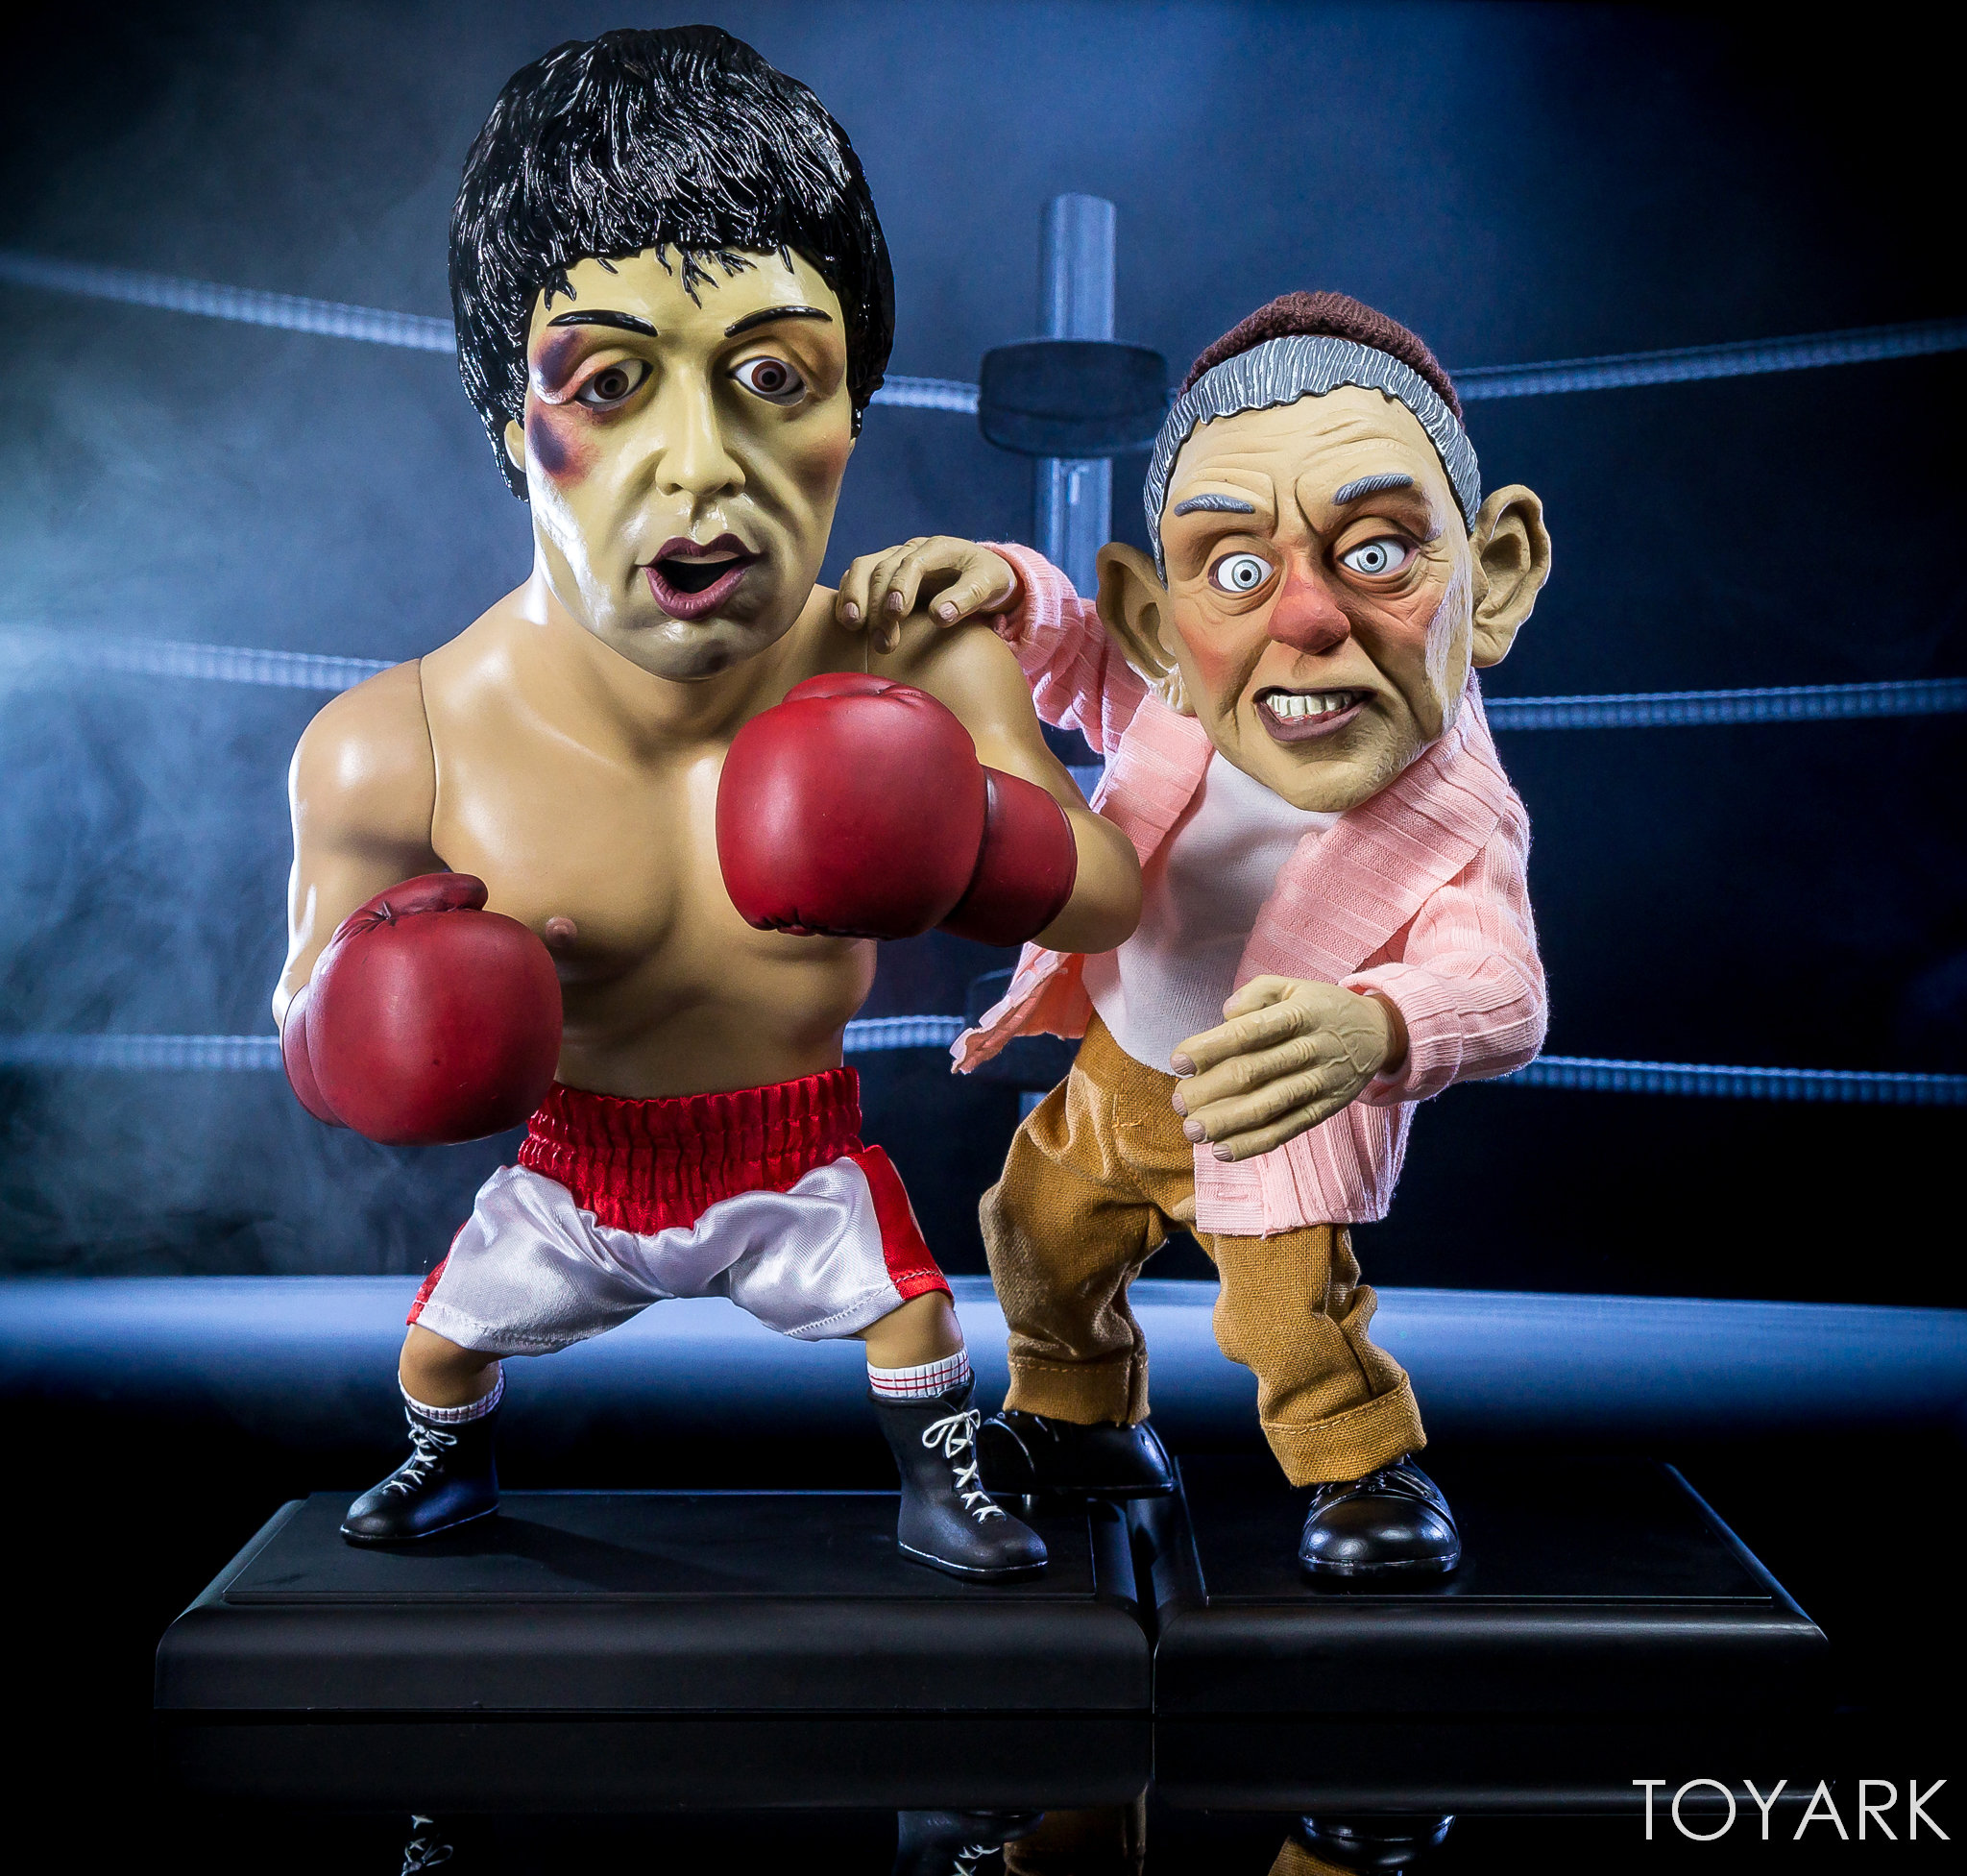 https://news.toyark.com/wp-content/uploads/sites/4/2018/07/NECA-Rocky-and-Mickey-Statues-013.jpg